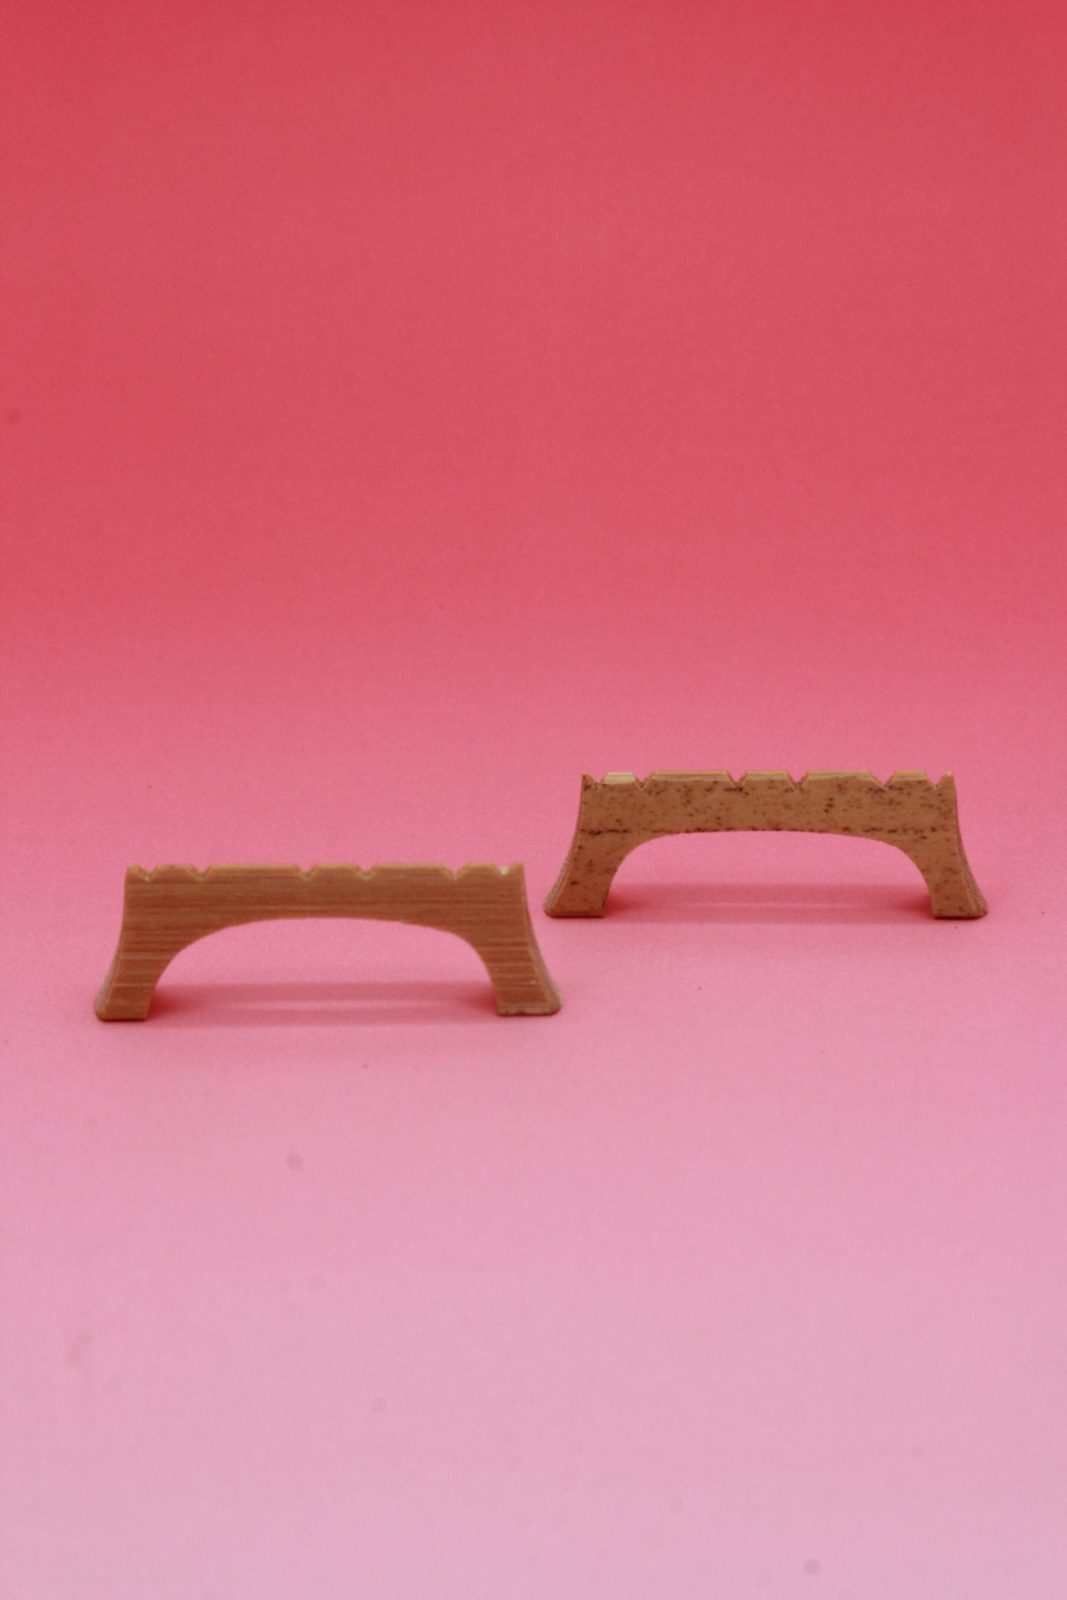 Rokushin(six strings sanshin) Bamboo bridge - 2 pieces set